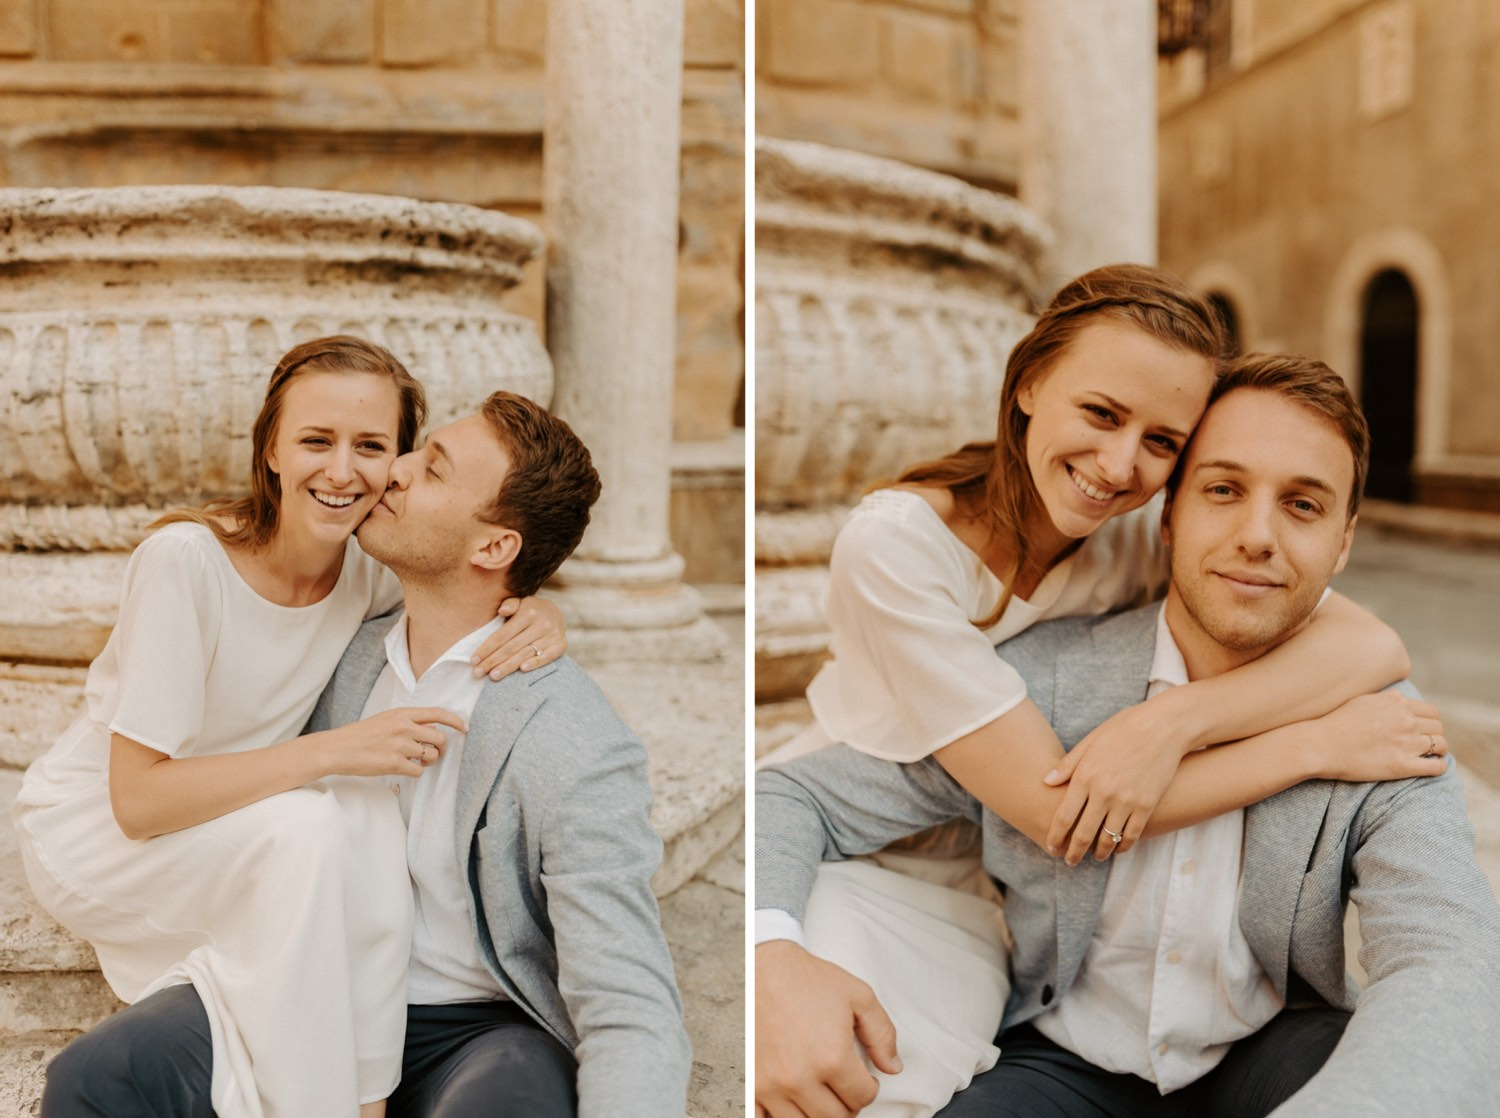 46_ali-dirk-pre-wedding-188_ali-dirk-pre-wedding-190_tuscany_siena_destination_wedding_italy_photography.jpg